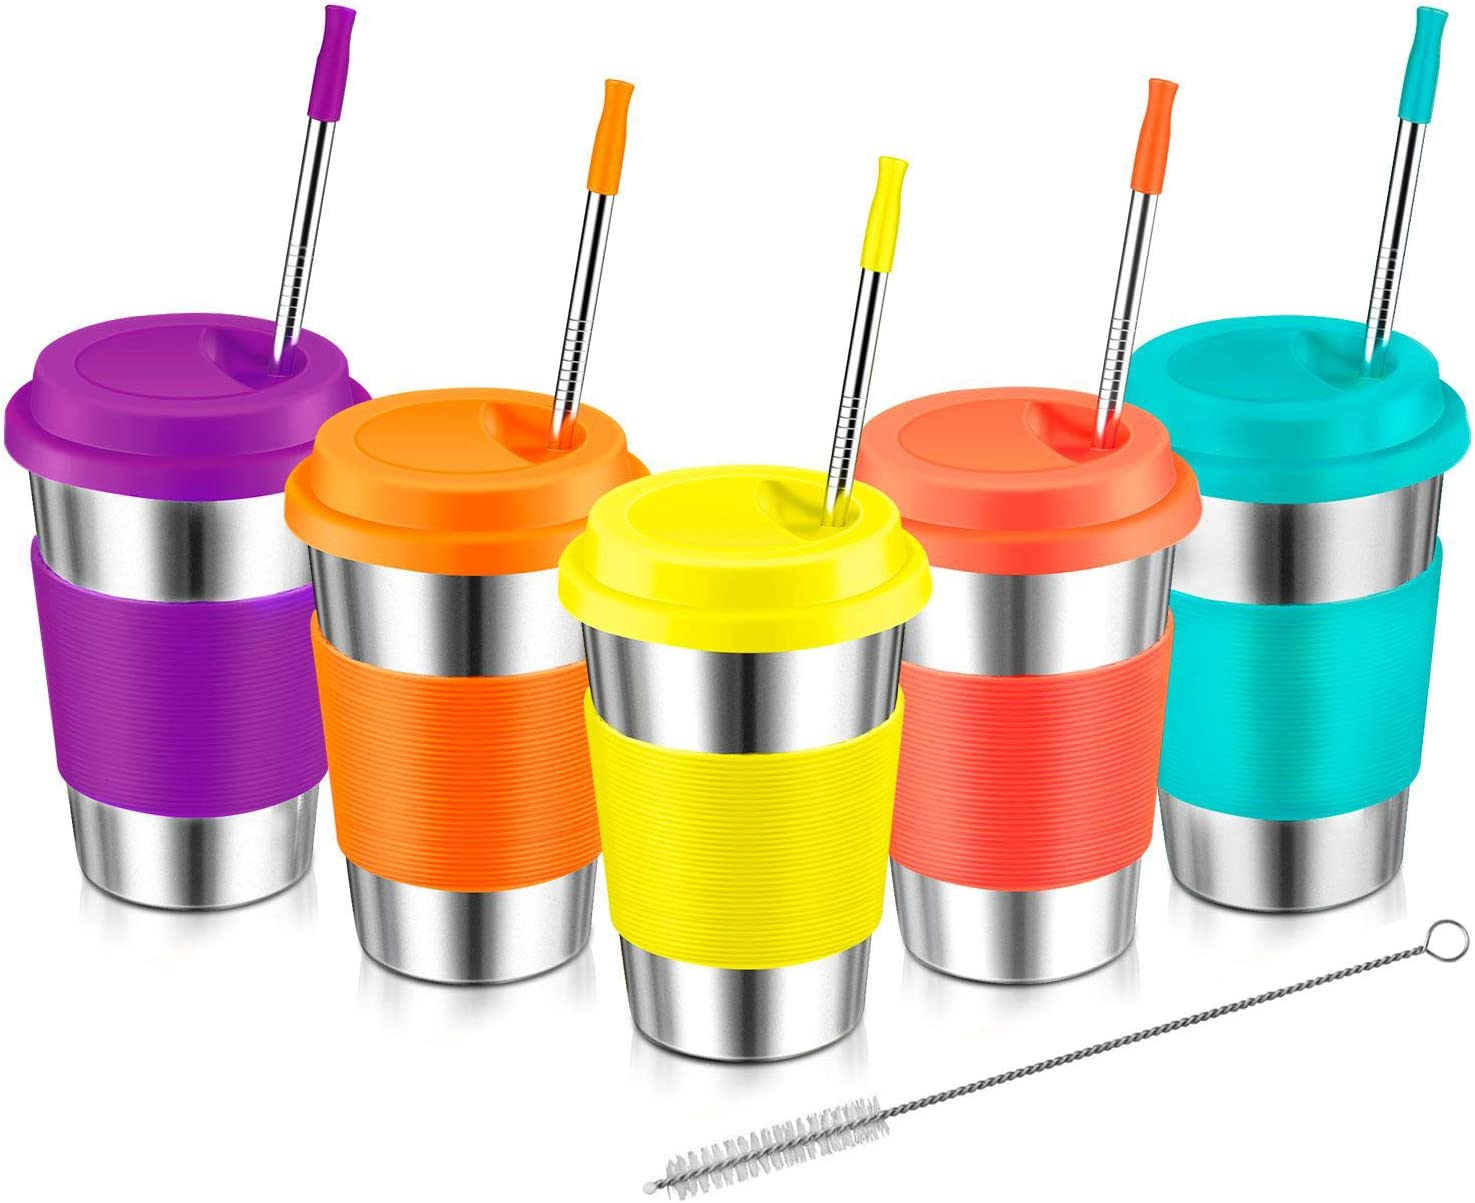 Stainless Steel Cups For Kids, Kereda 16oz. 5-Pack Tumblers Set Coffee Mugs Premium Drinking Glasses With Lids And Metal Straws Unbreakable